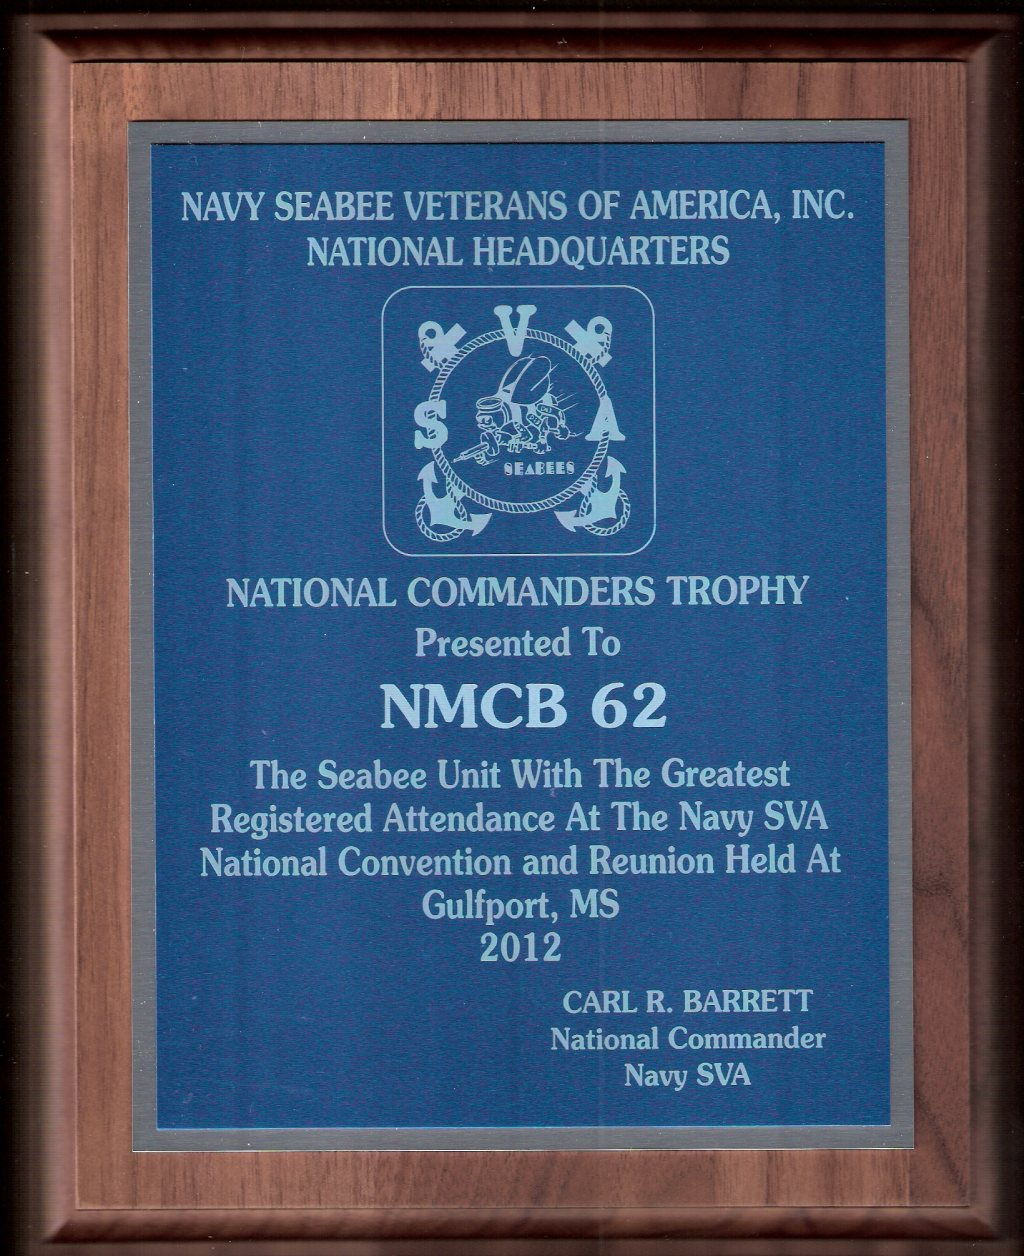 National Commanders Trophy October 2012 National Convention Gulfport, MS